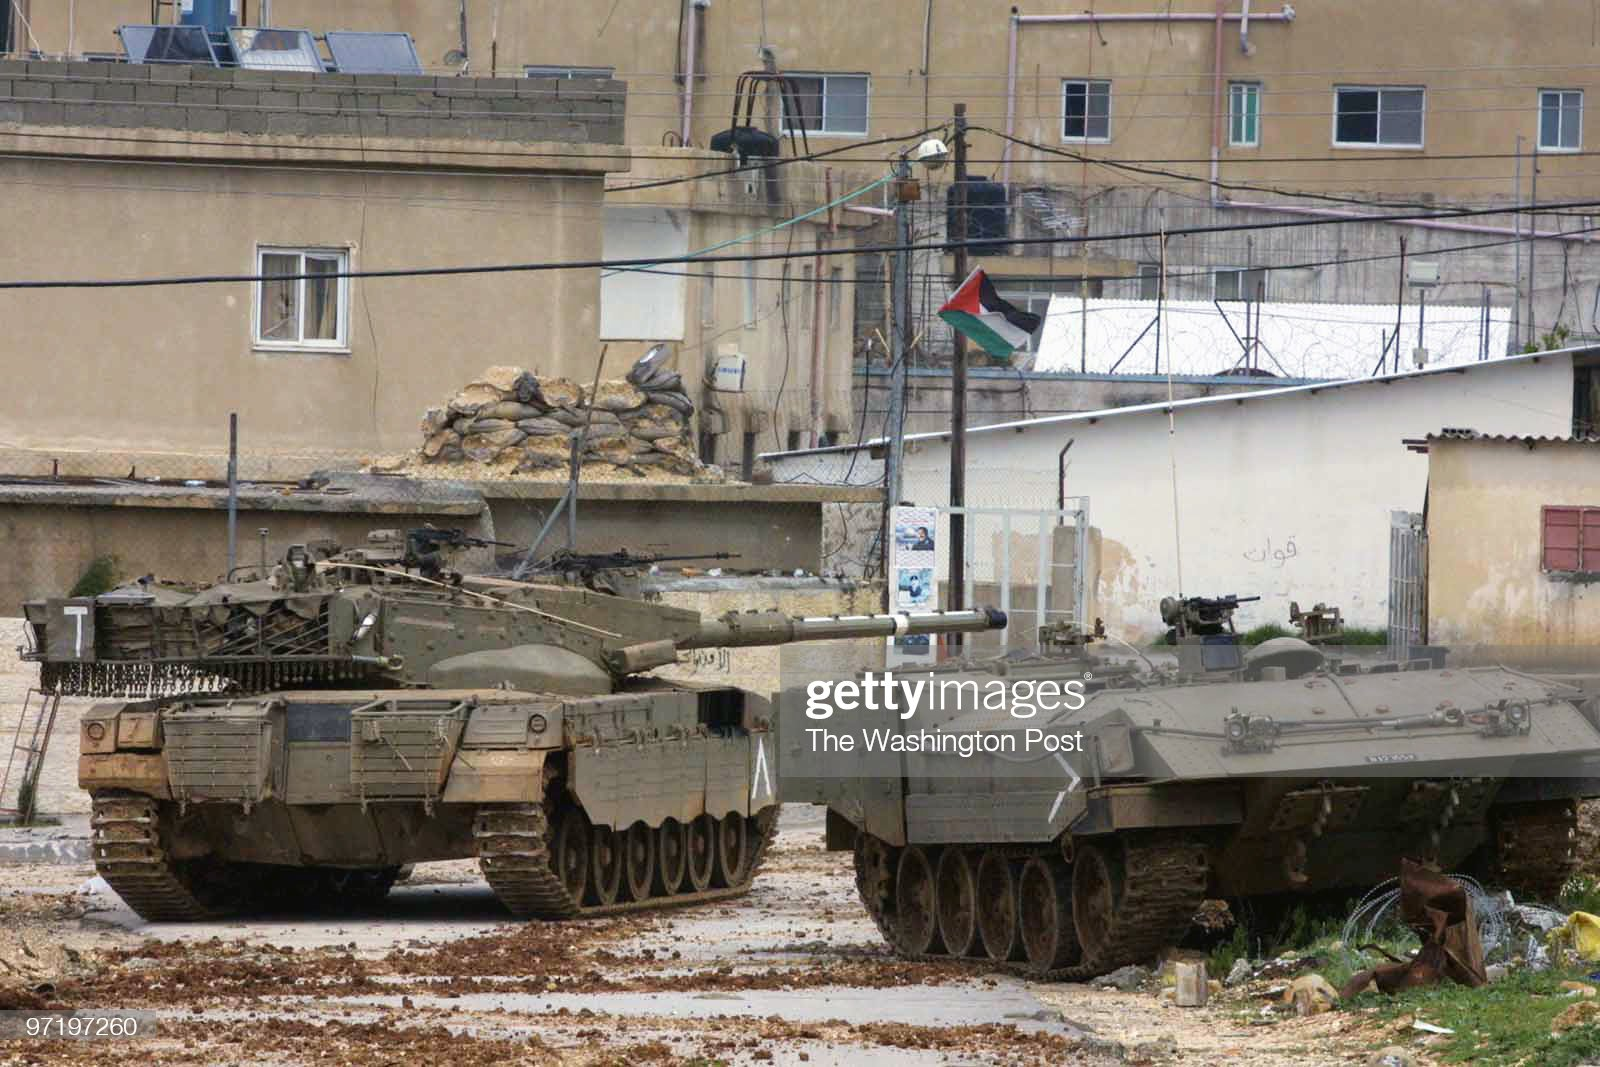 https://media.gettyimages.com/photos/ramallah-west-bank-32902-israeli-tanks-and-armored-personnel-carriers-picture-id97197260?s=2048x2048